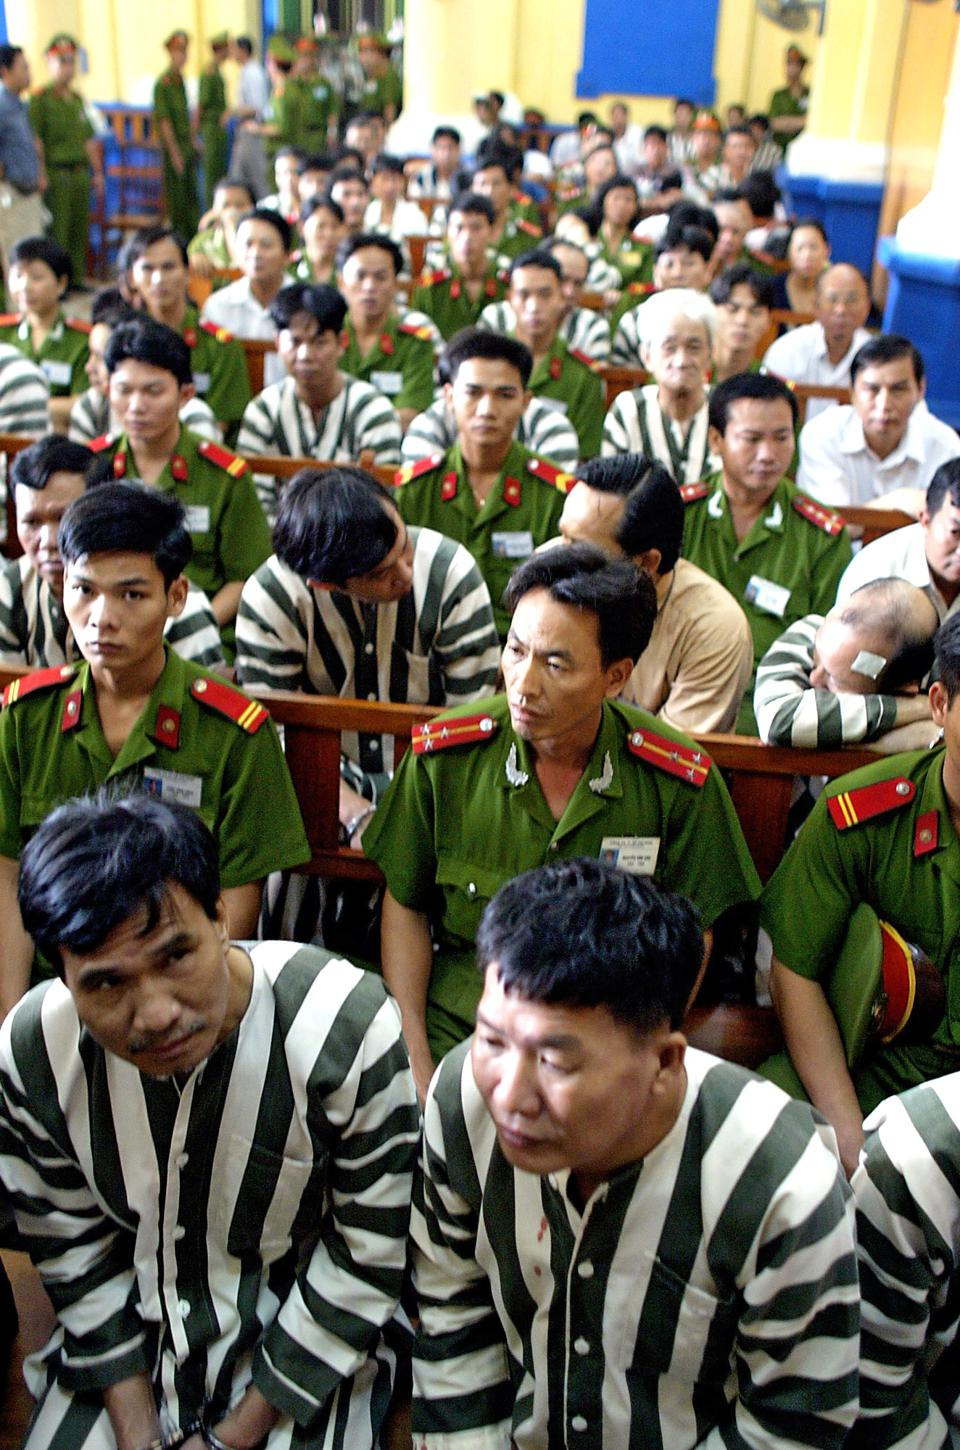 Defendants and police await a verdict during a corruption trial in Ho Chi Minh City's court in June 2003. (AP Photo/Richard Vogel, FILE)